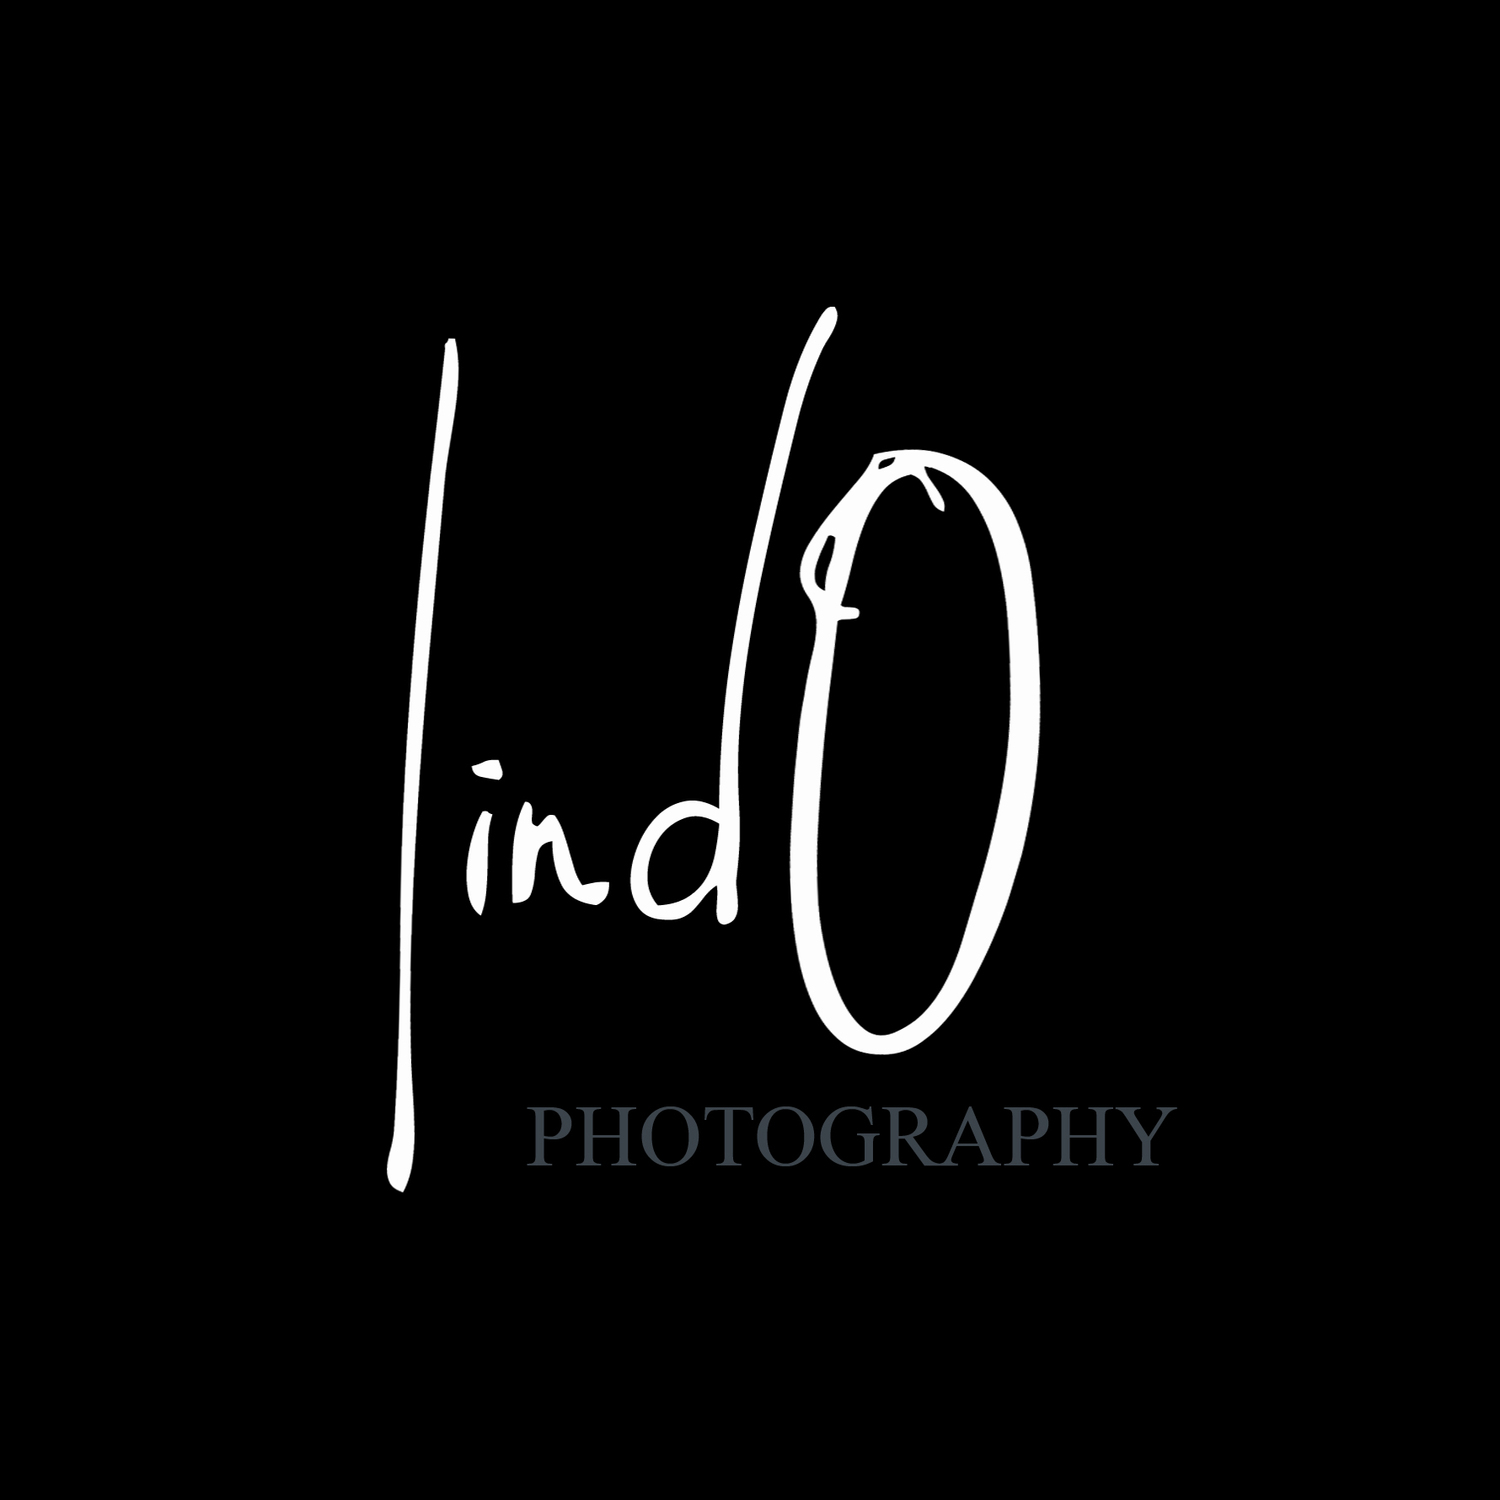 lindO Photography